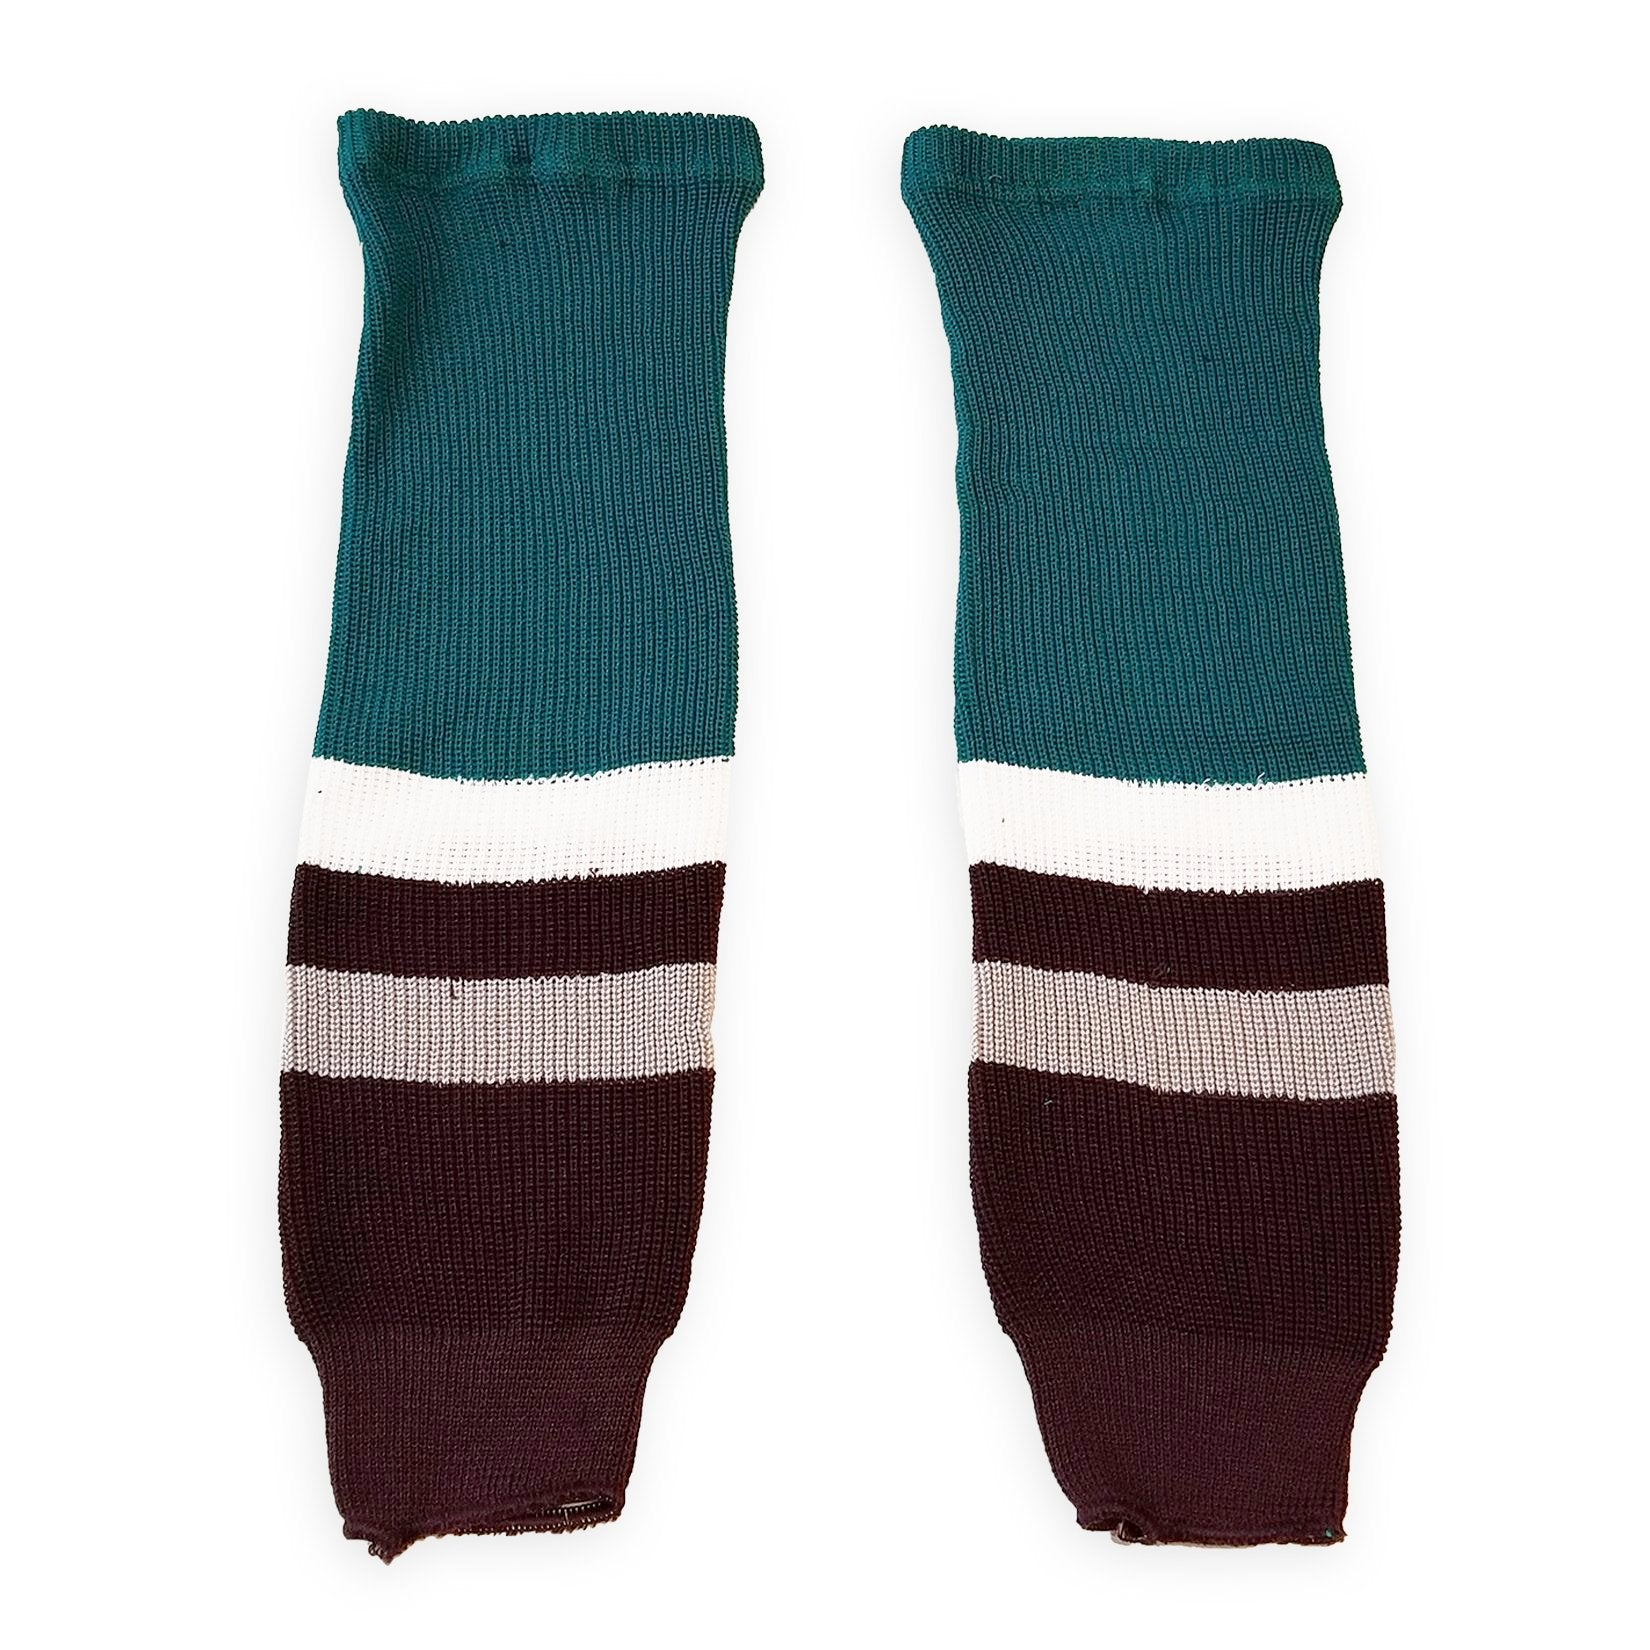 competitive price 74223 95070 Athletic Knit (AK) HS630 Anaheim Mighty Ducks Eggplant Ice ...